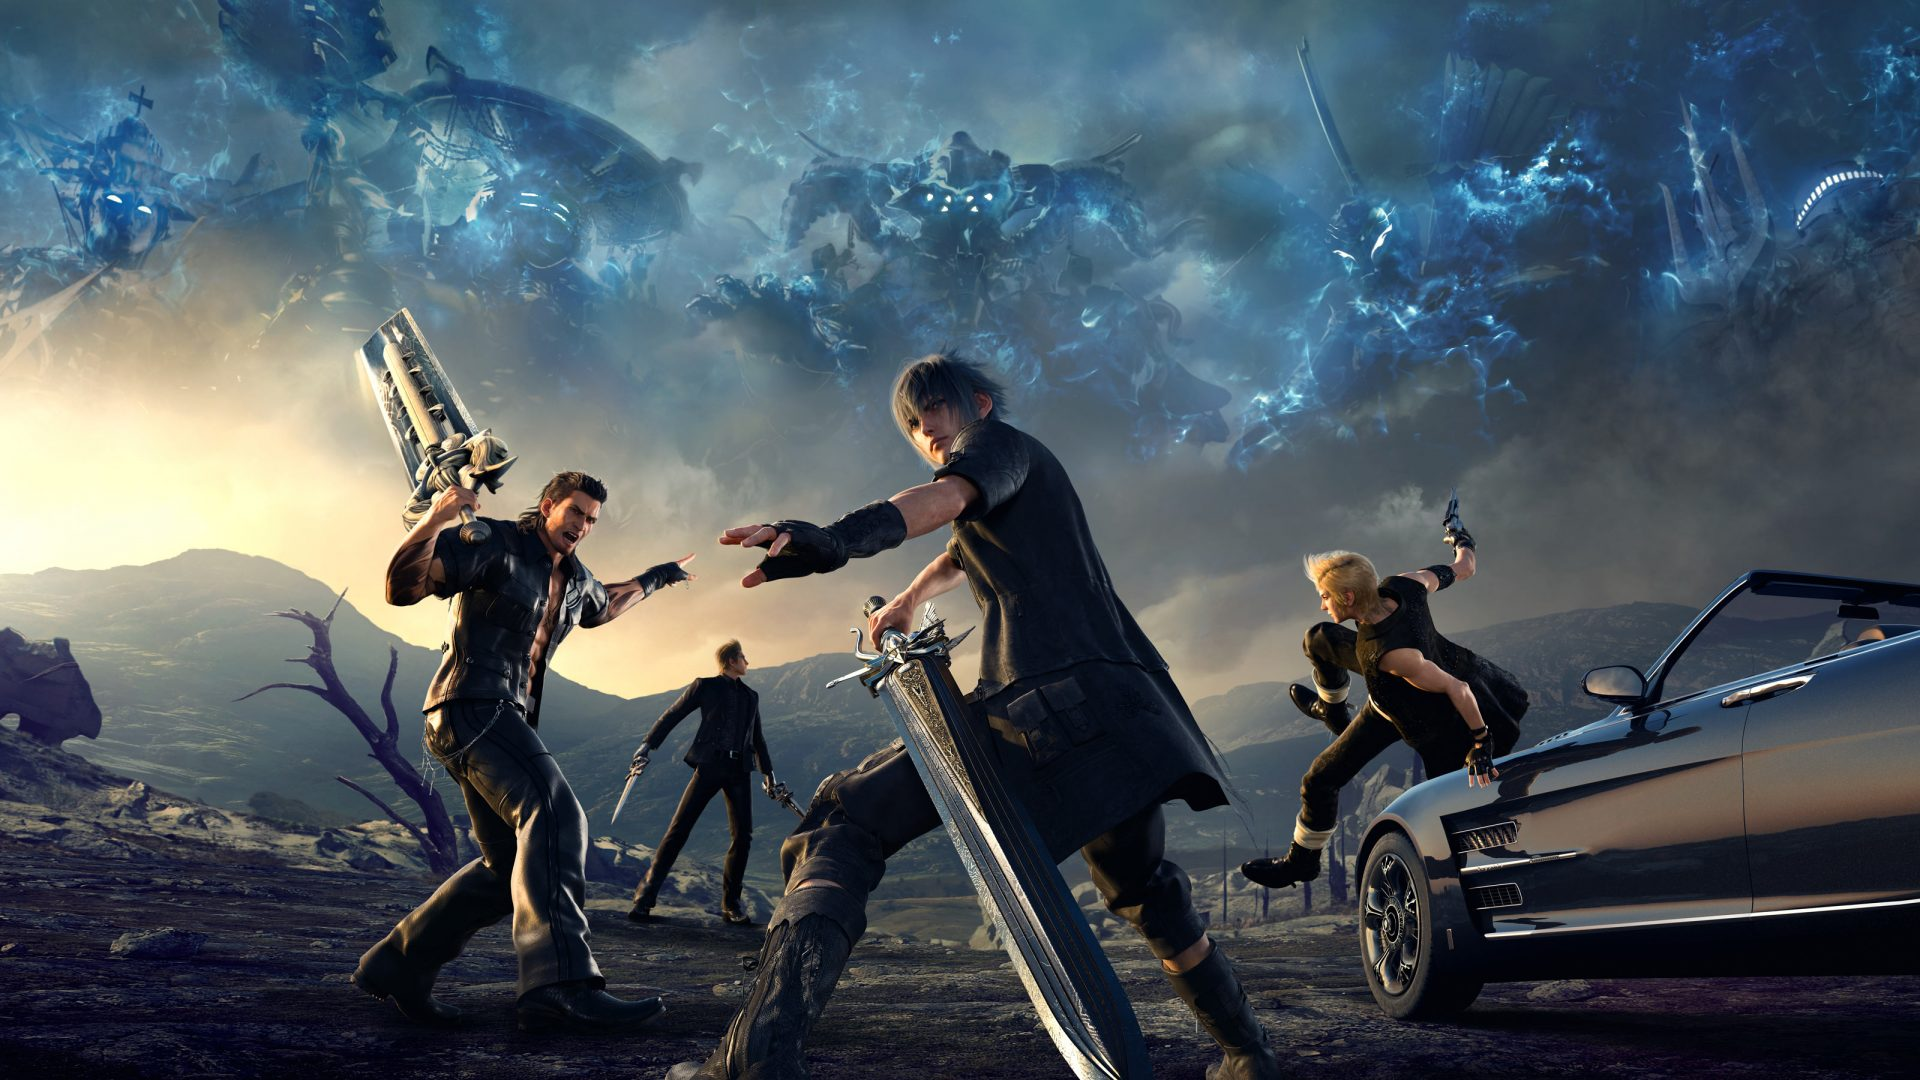 Final Fantasy 15: Welcome to Eos